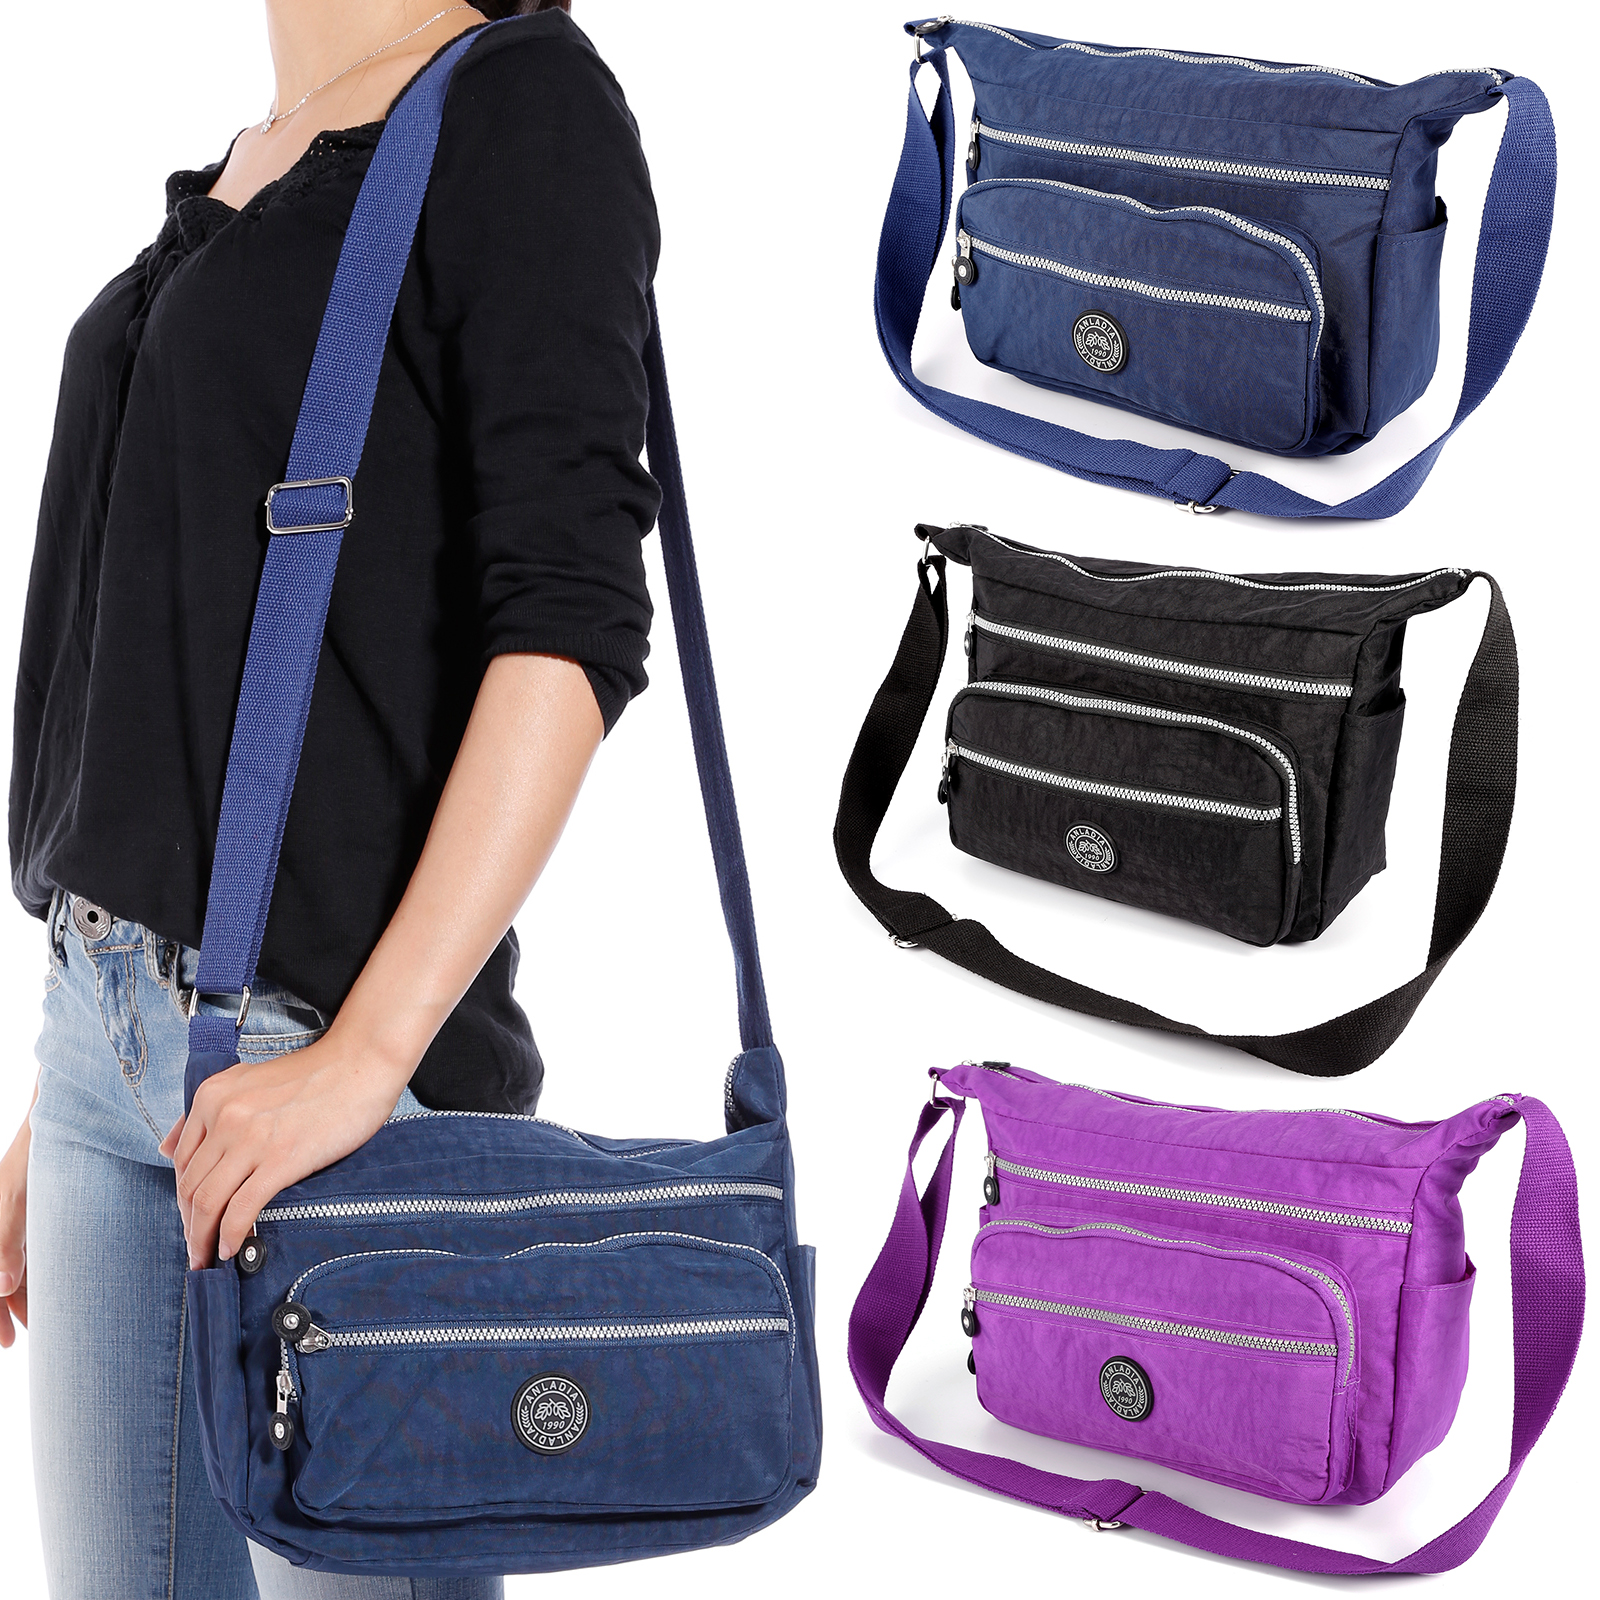 85c444959315 Details about Women s Multi Pocket Nylon Messenger Bags Cross Body Shoulder  Bag Travel Purse